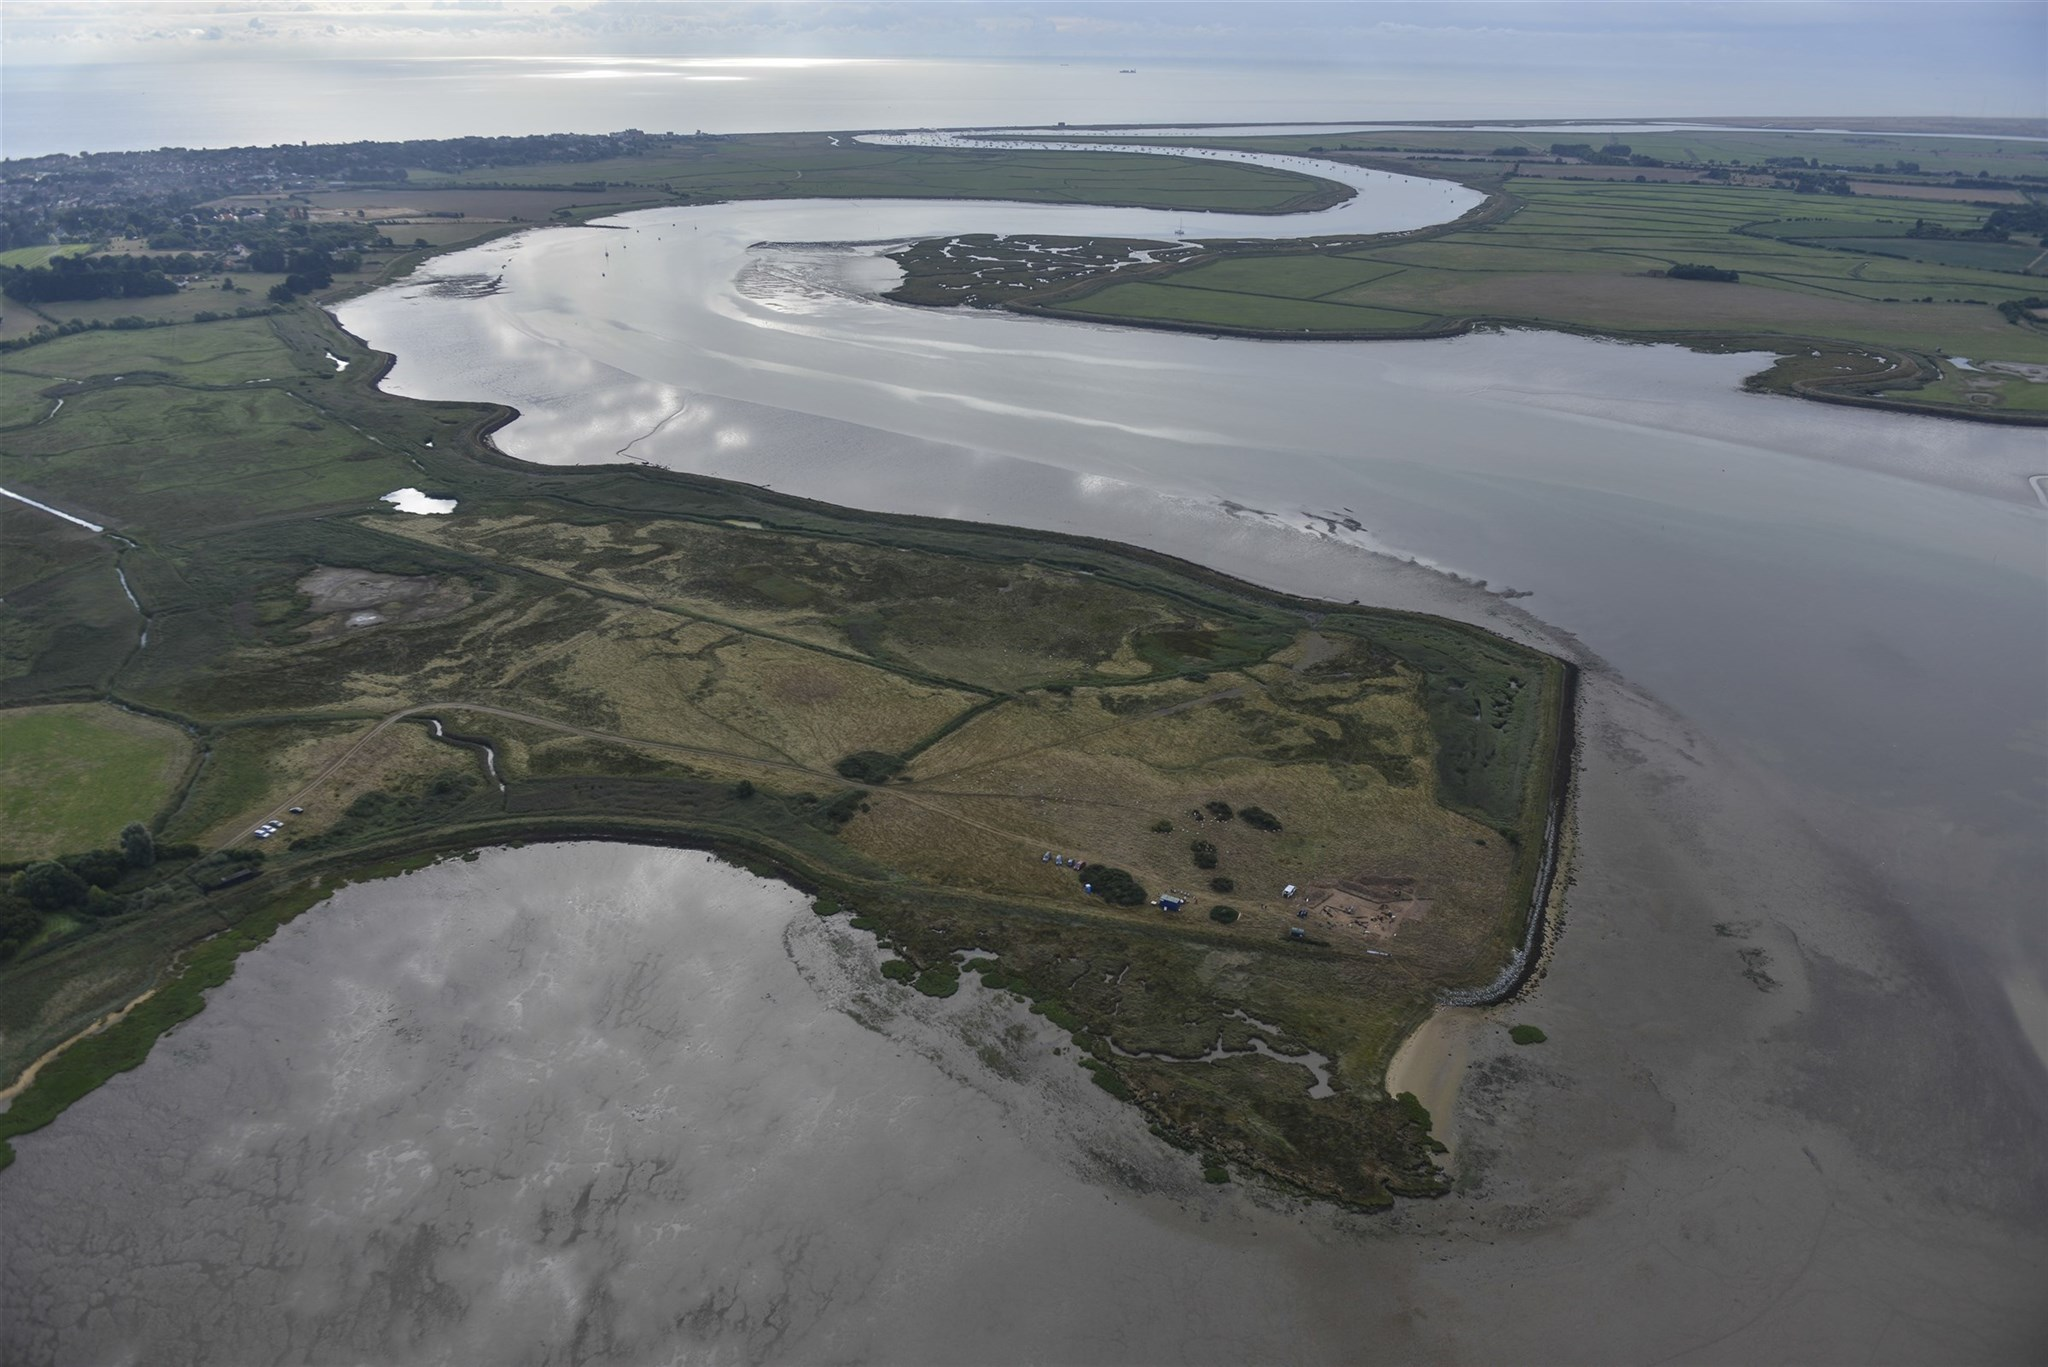 Case Study: 'Touching the Tide' - Community excavations at Barber's Point, Friston, Suffolk